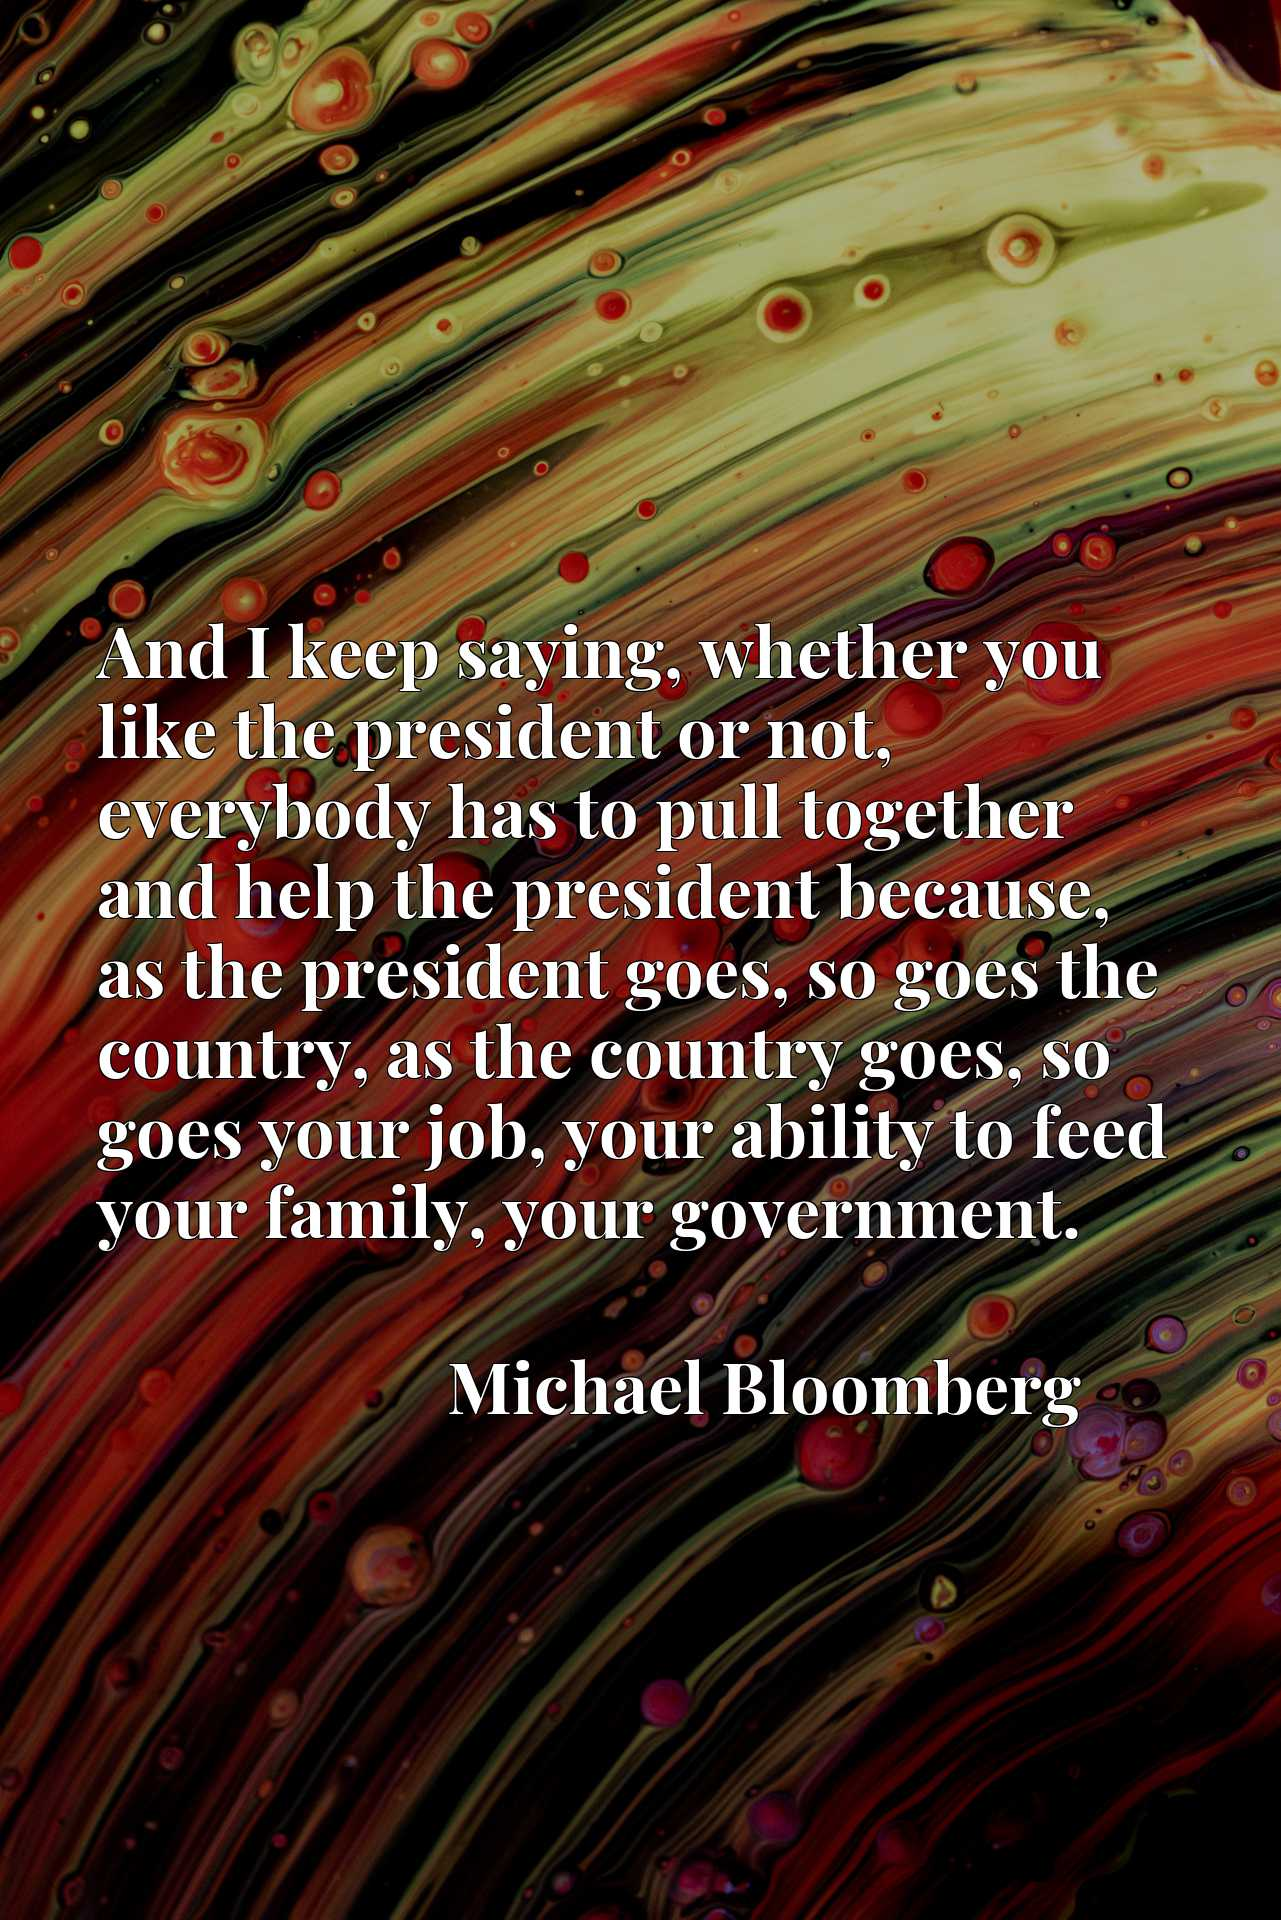 And I keep saying, whether you like the president or not, everybody has to pull together and help the president because, as the president goes, so goes the country, as the country goes, so goes your job, your ability to feed your family, your government.